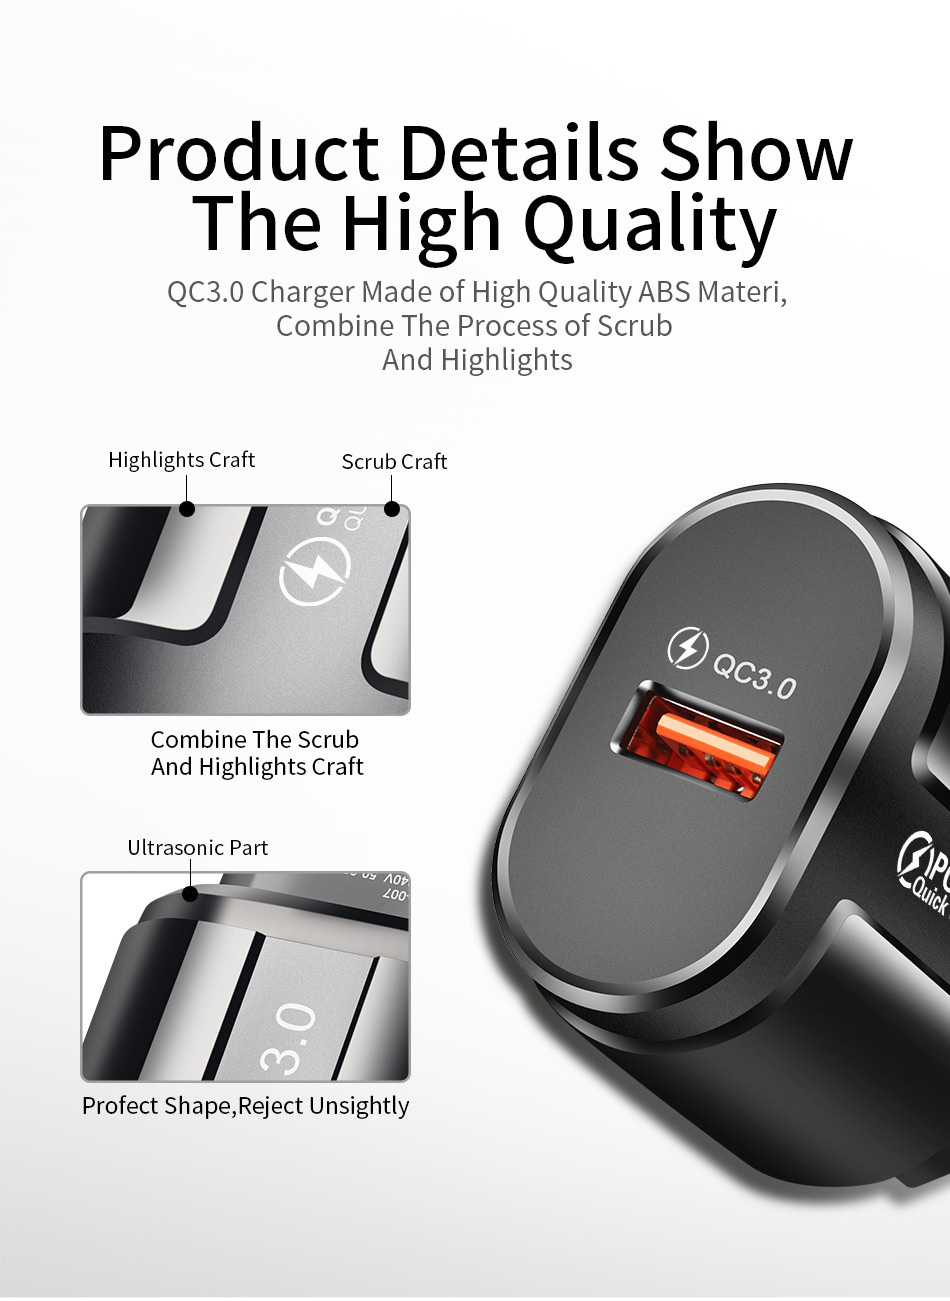 UC3746 Charger details